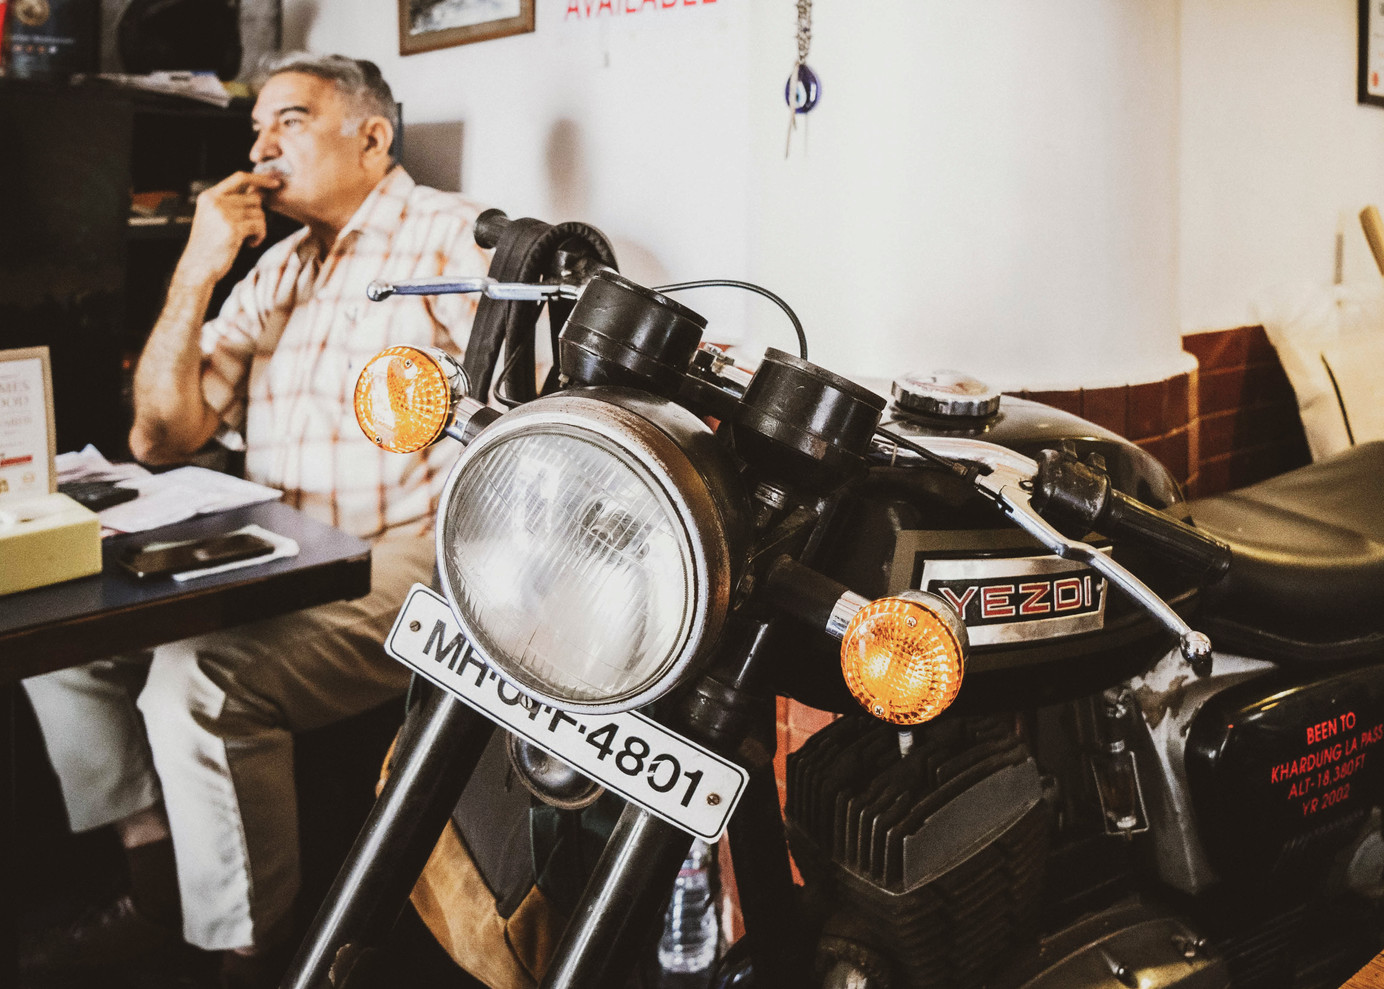 A Yezdi Oilking bike alongside its proud owner, Parvez Patel (seated left), at the heart of Cafe Ideal Corner. Patel had made a trip to Khardung La, the highest motorable road in India, in the year 2002 on this bike. Unfortunately, Yezdi stopped production of their iconic bikes in 1996.